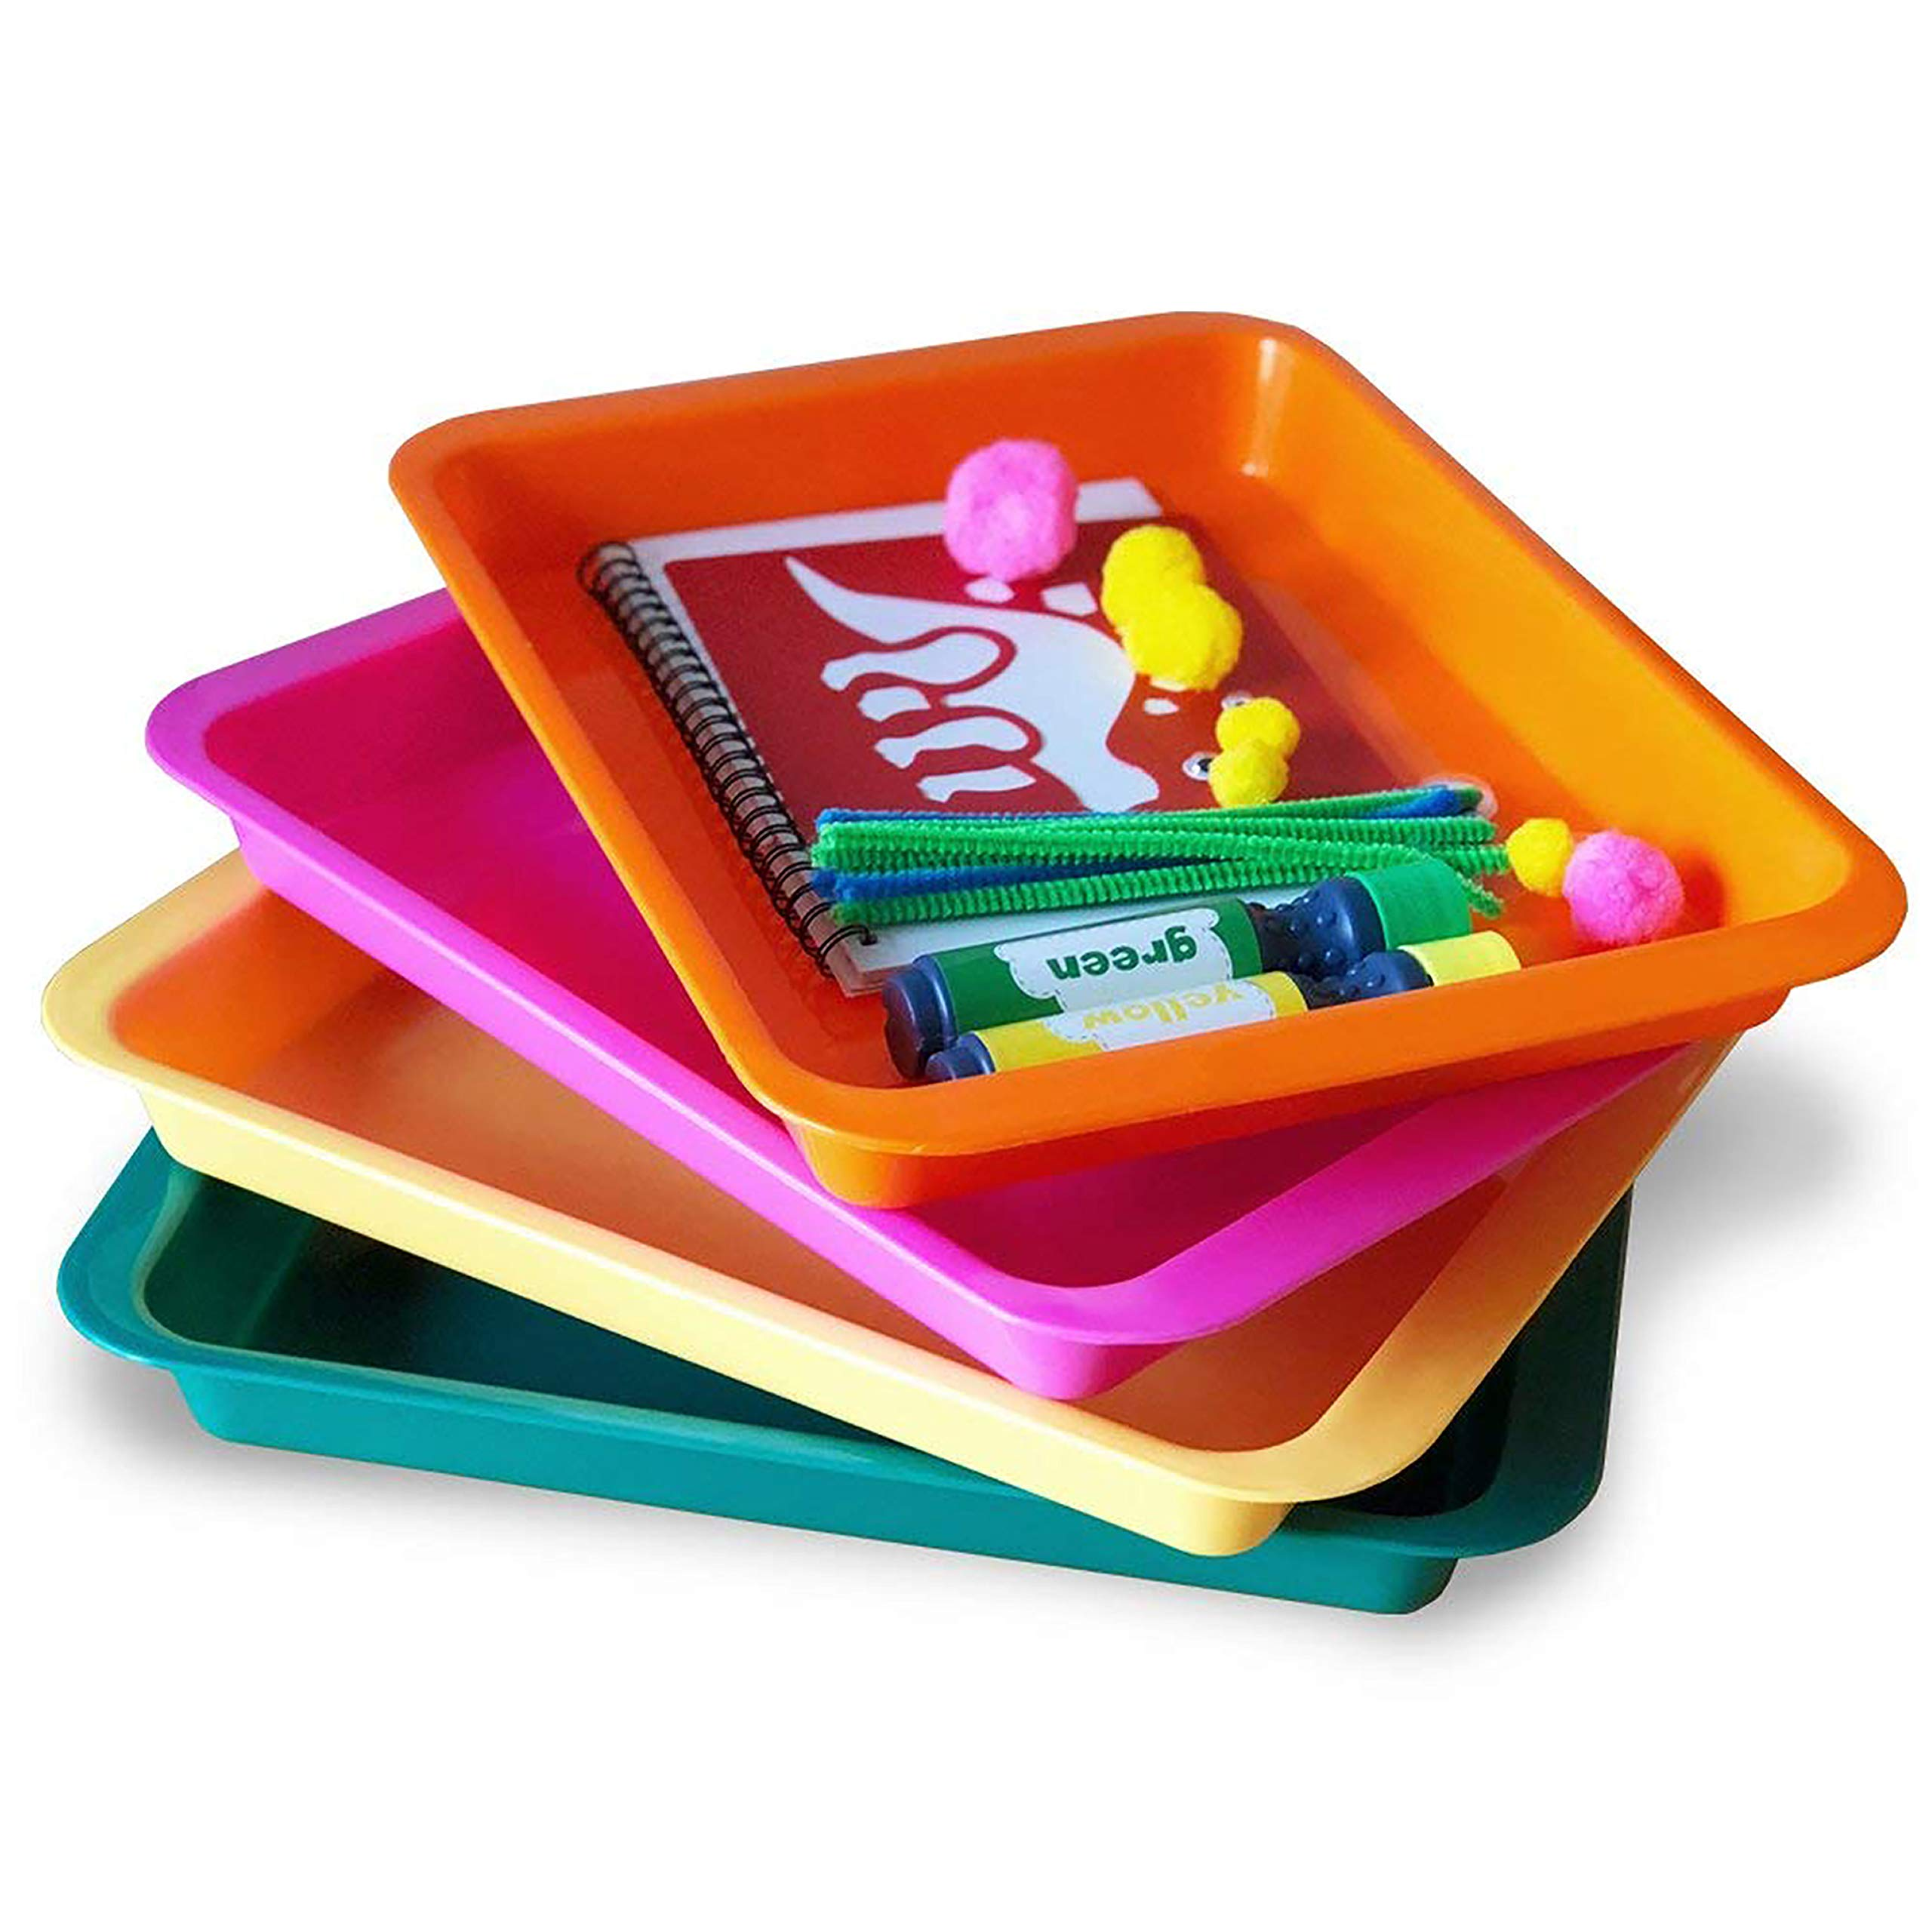 Activity Plastic Tray - Art + Crafts Organizer Tray, Serving Tray, Great for Crafts, Beads, Orbeez Water Beads, Painting (Set of 4 Colors - Pink, Yellow, Green, Orange) by Dab and Dot Markers